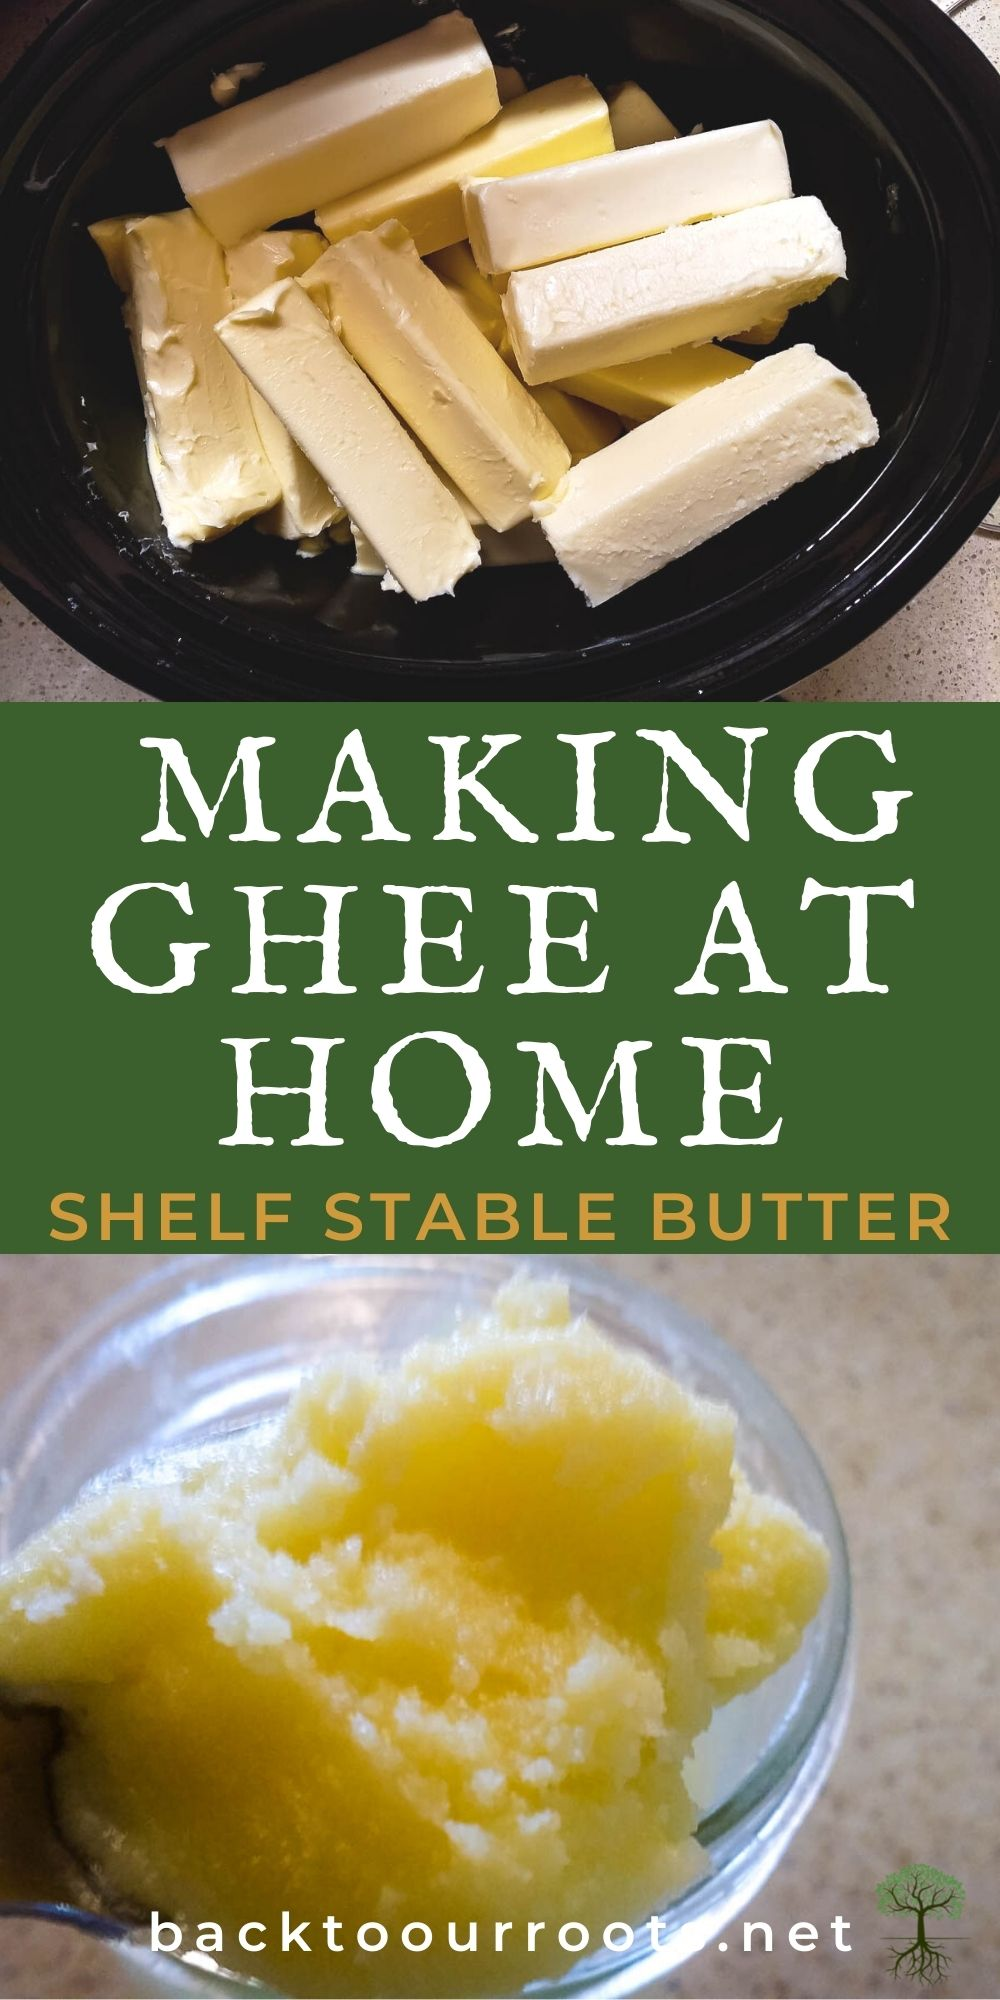 Making Ghee at Home